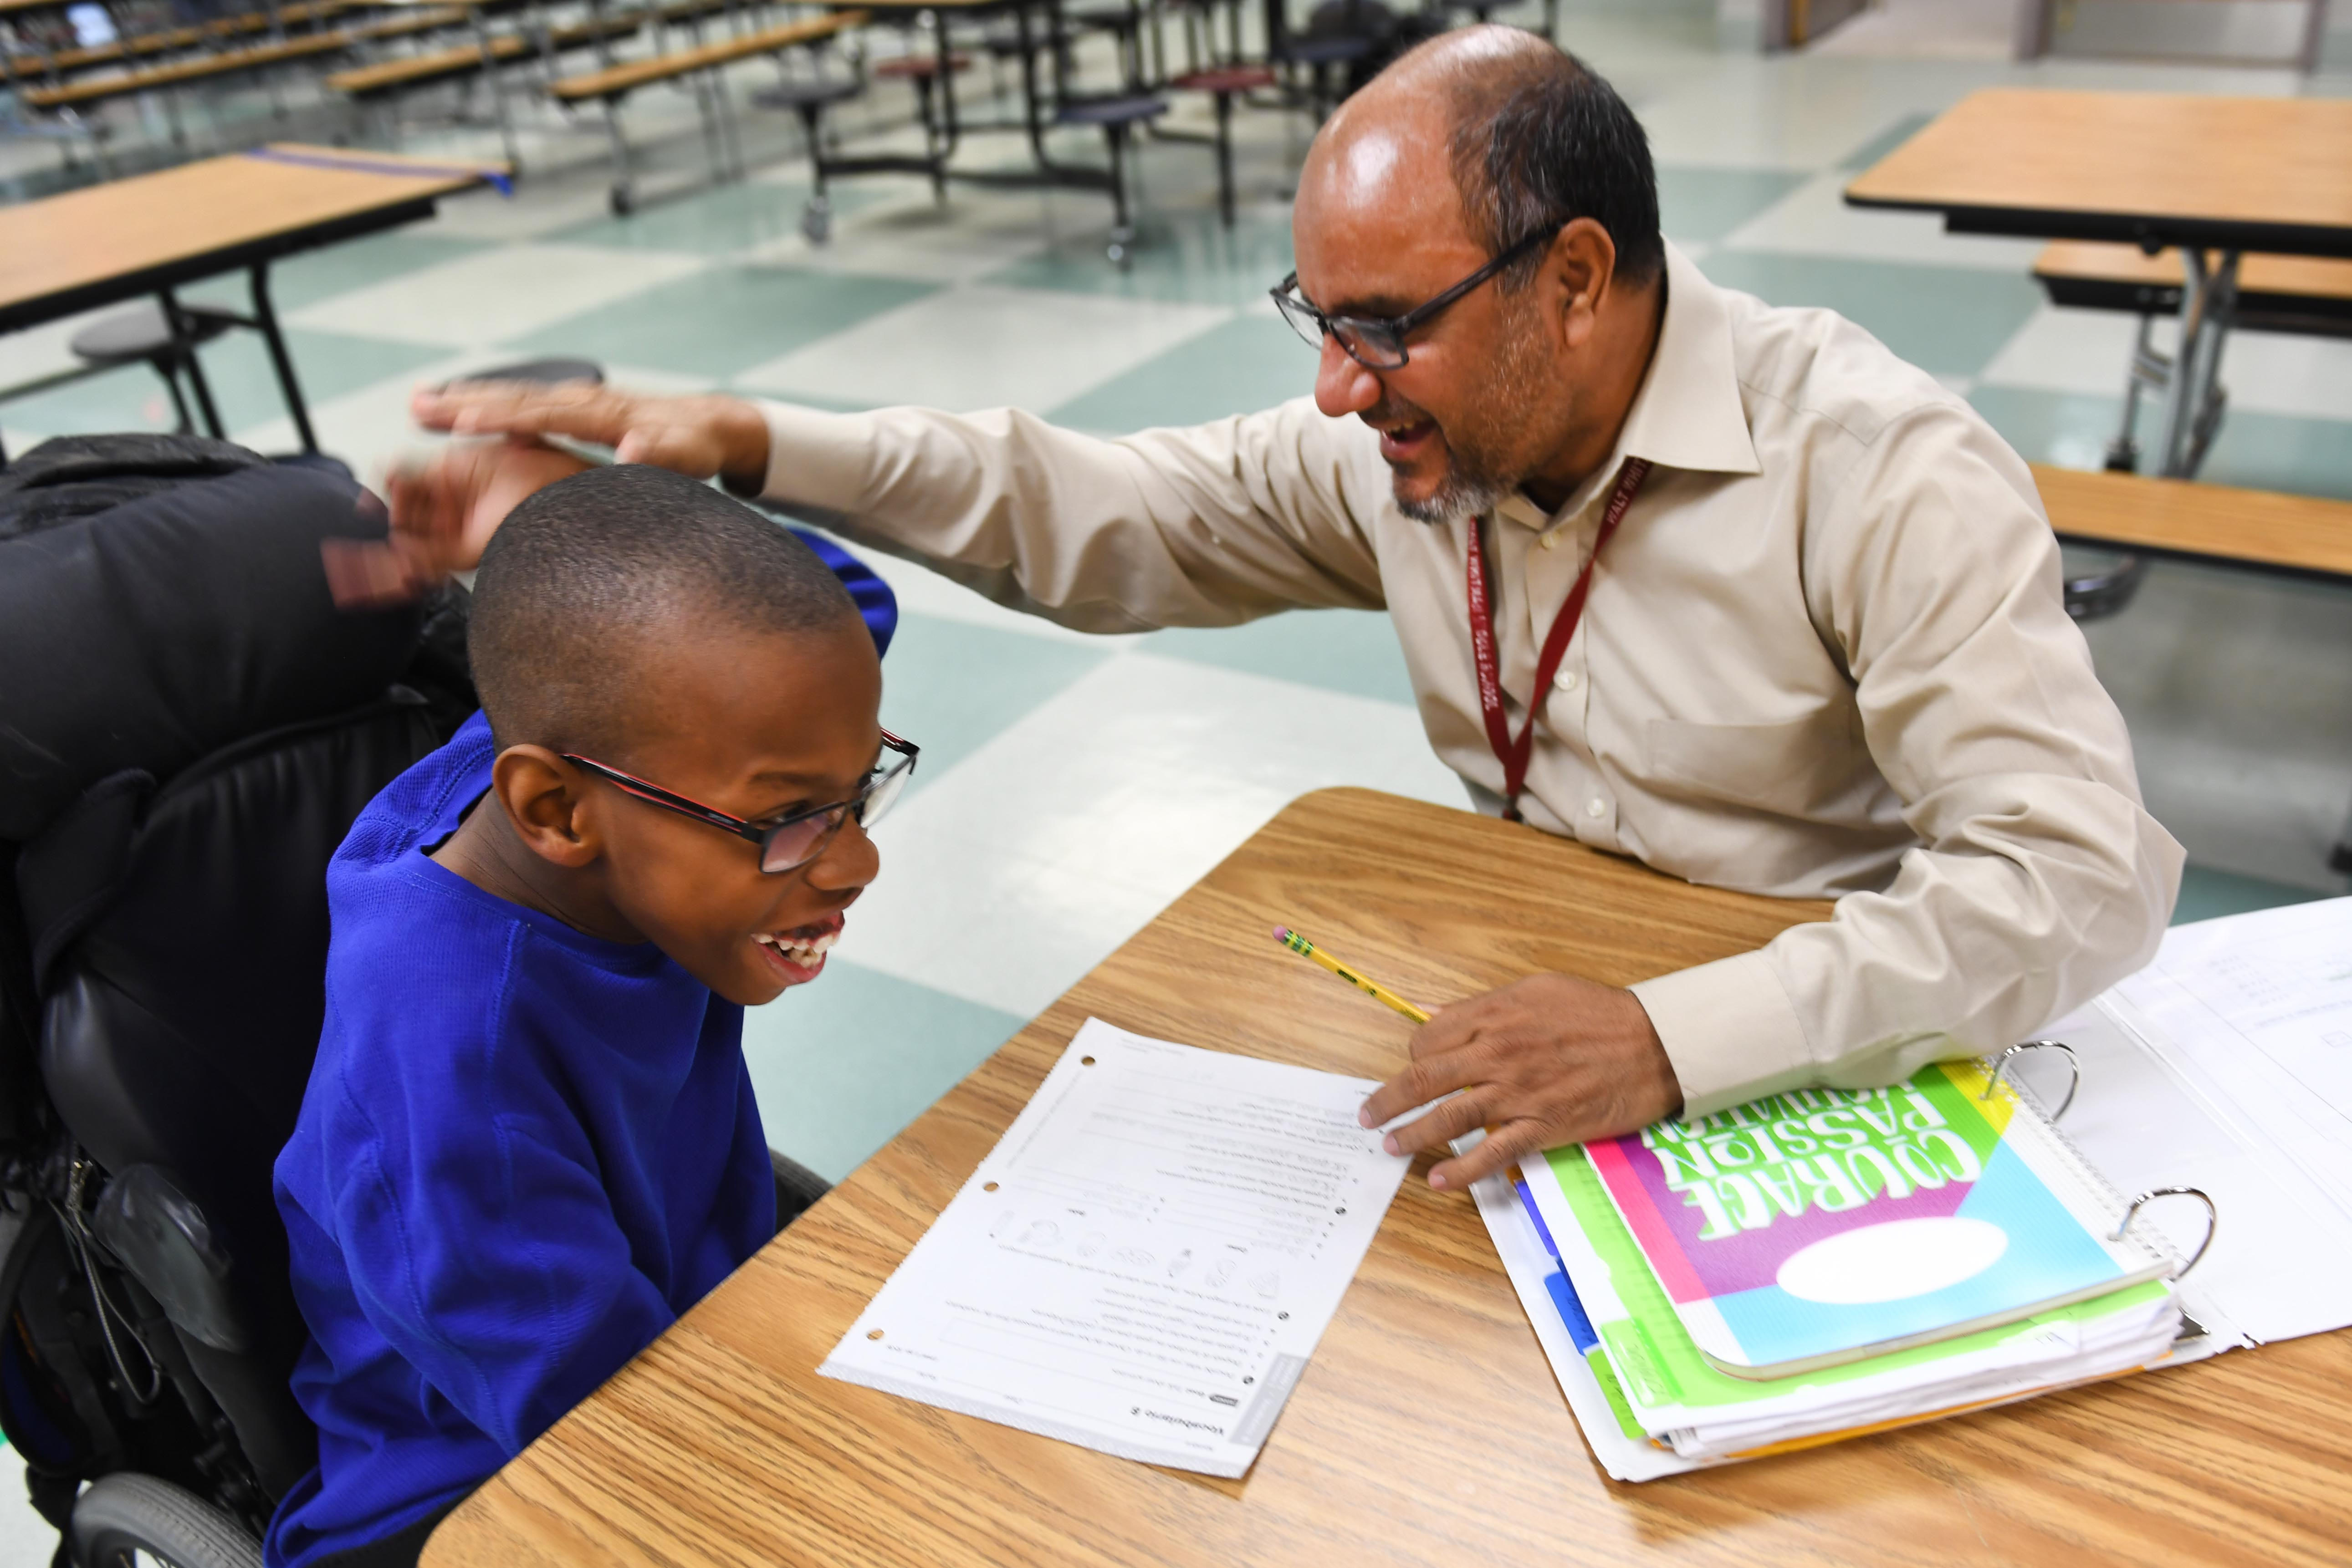 Abid Mohammad, public health training assistant at Walt Whitman Middle School in Alexandria, Virginia, gives a high-five to M.J. Arnold, who successfully completed his Spanish homework worksheet during an after-school program lsat month. MUST CREDIT: Washington Post photo by Katherine Frey.